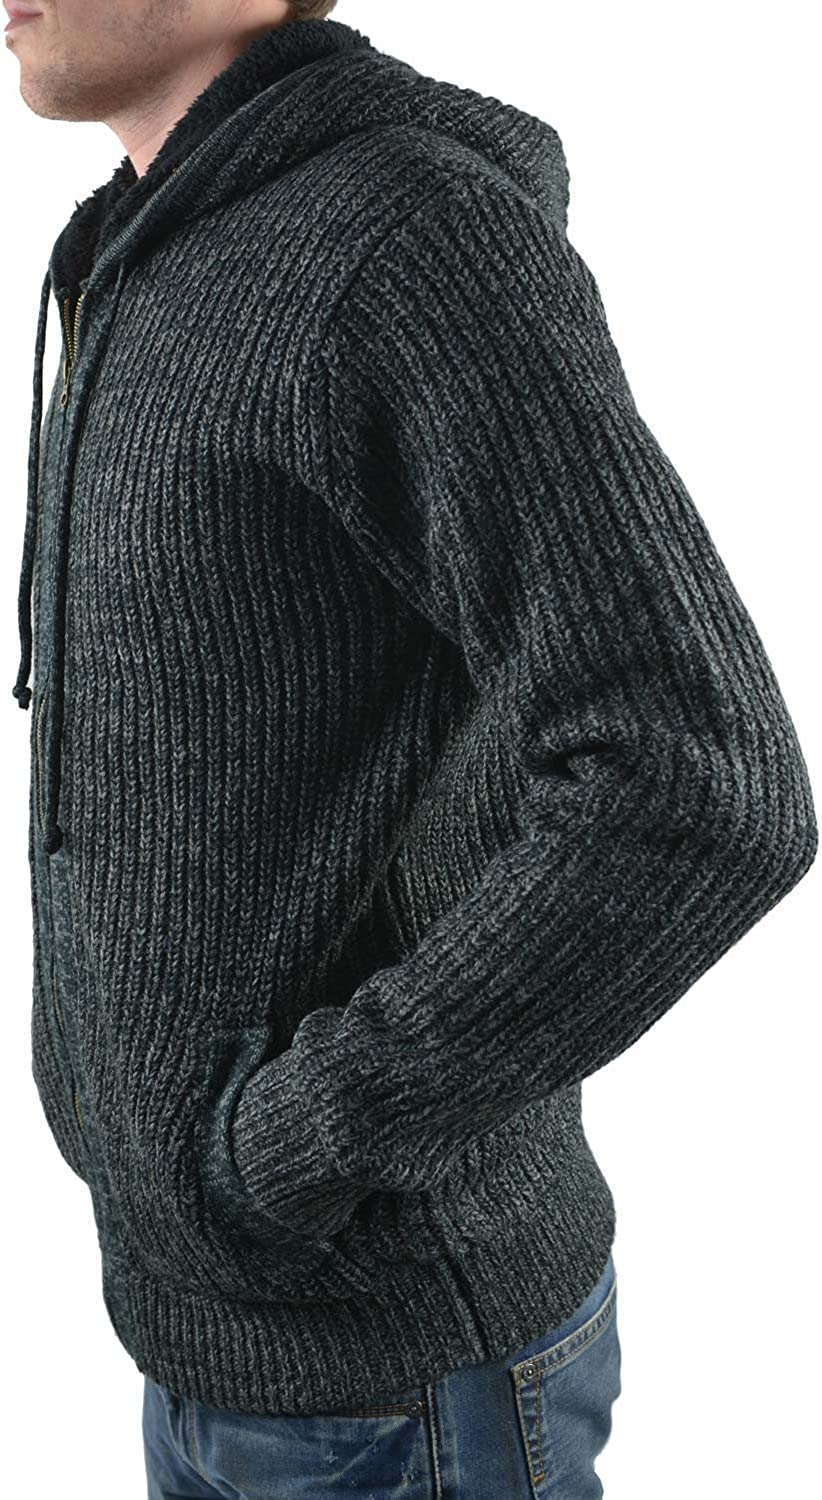 SHINE Original Herren Boa Knit Cardigan Strickjacken Grau (Charcoal Mix Charcoal Mix)